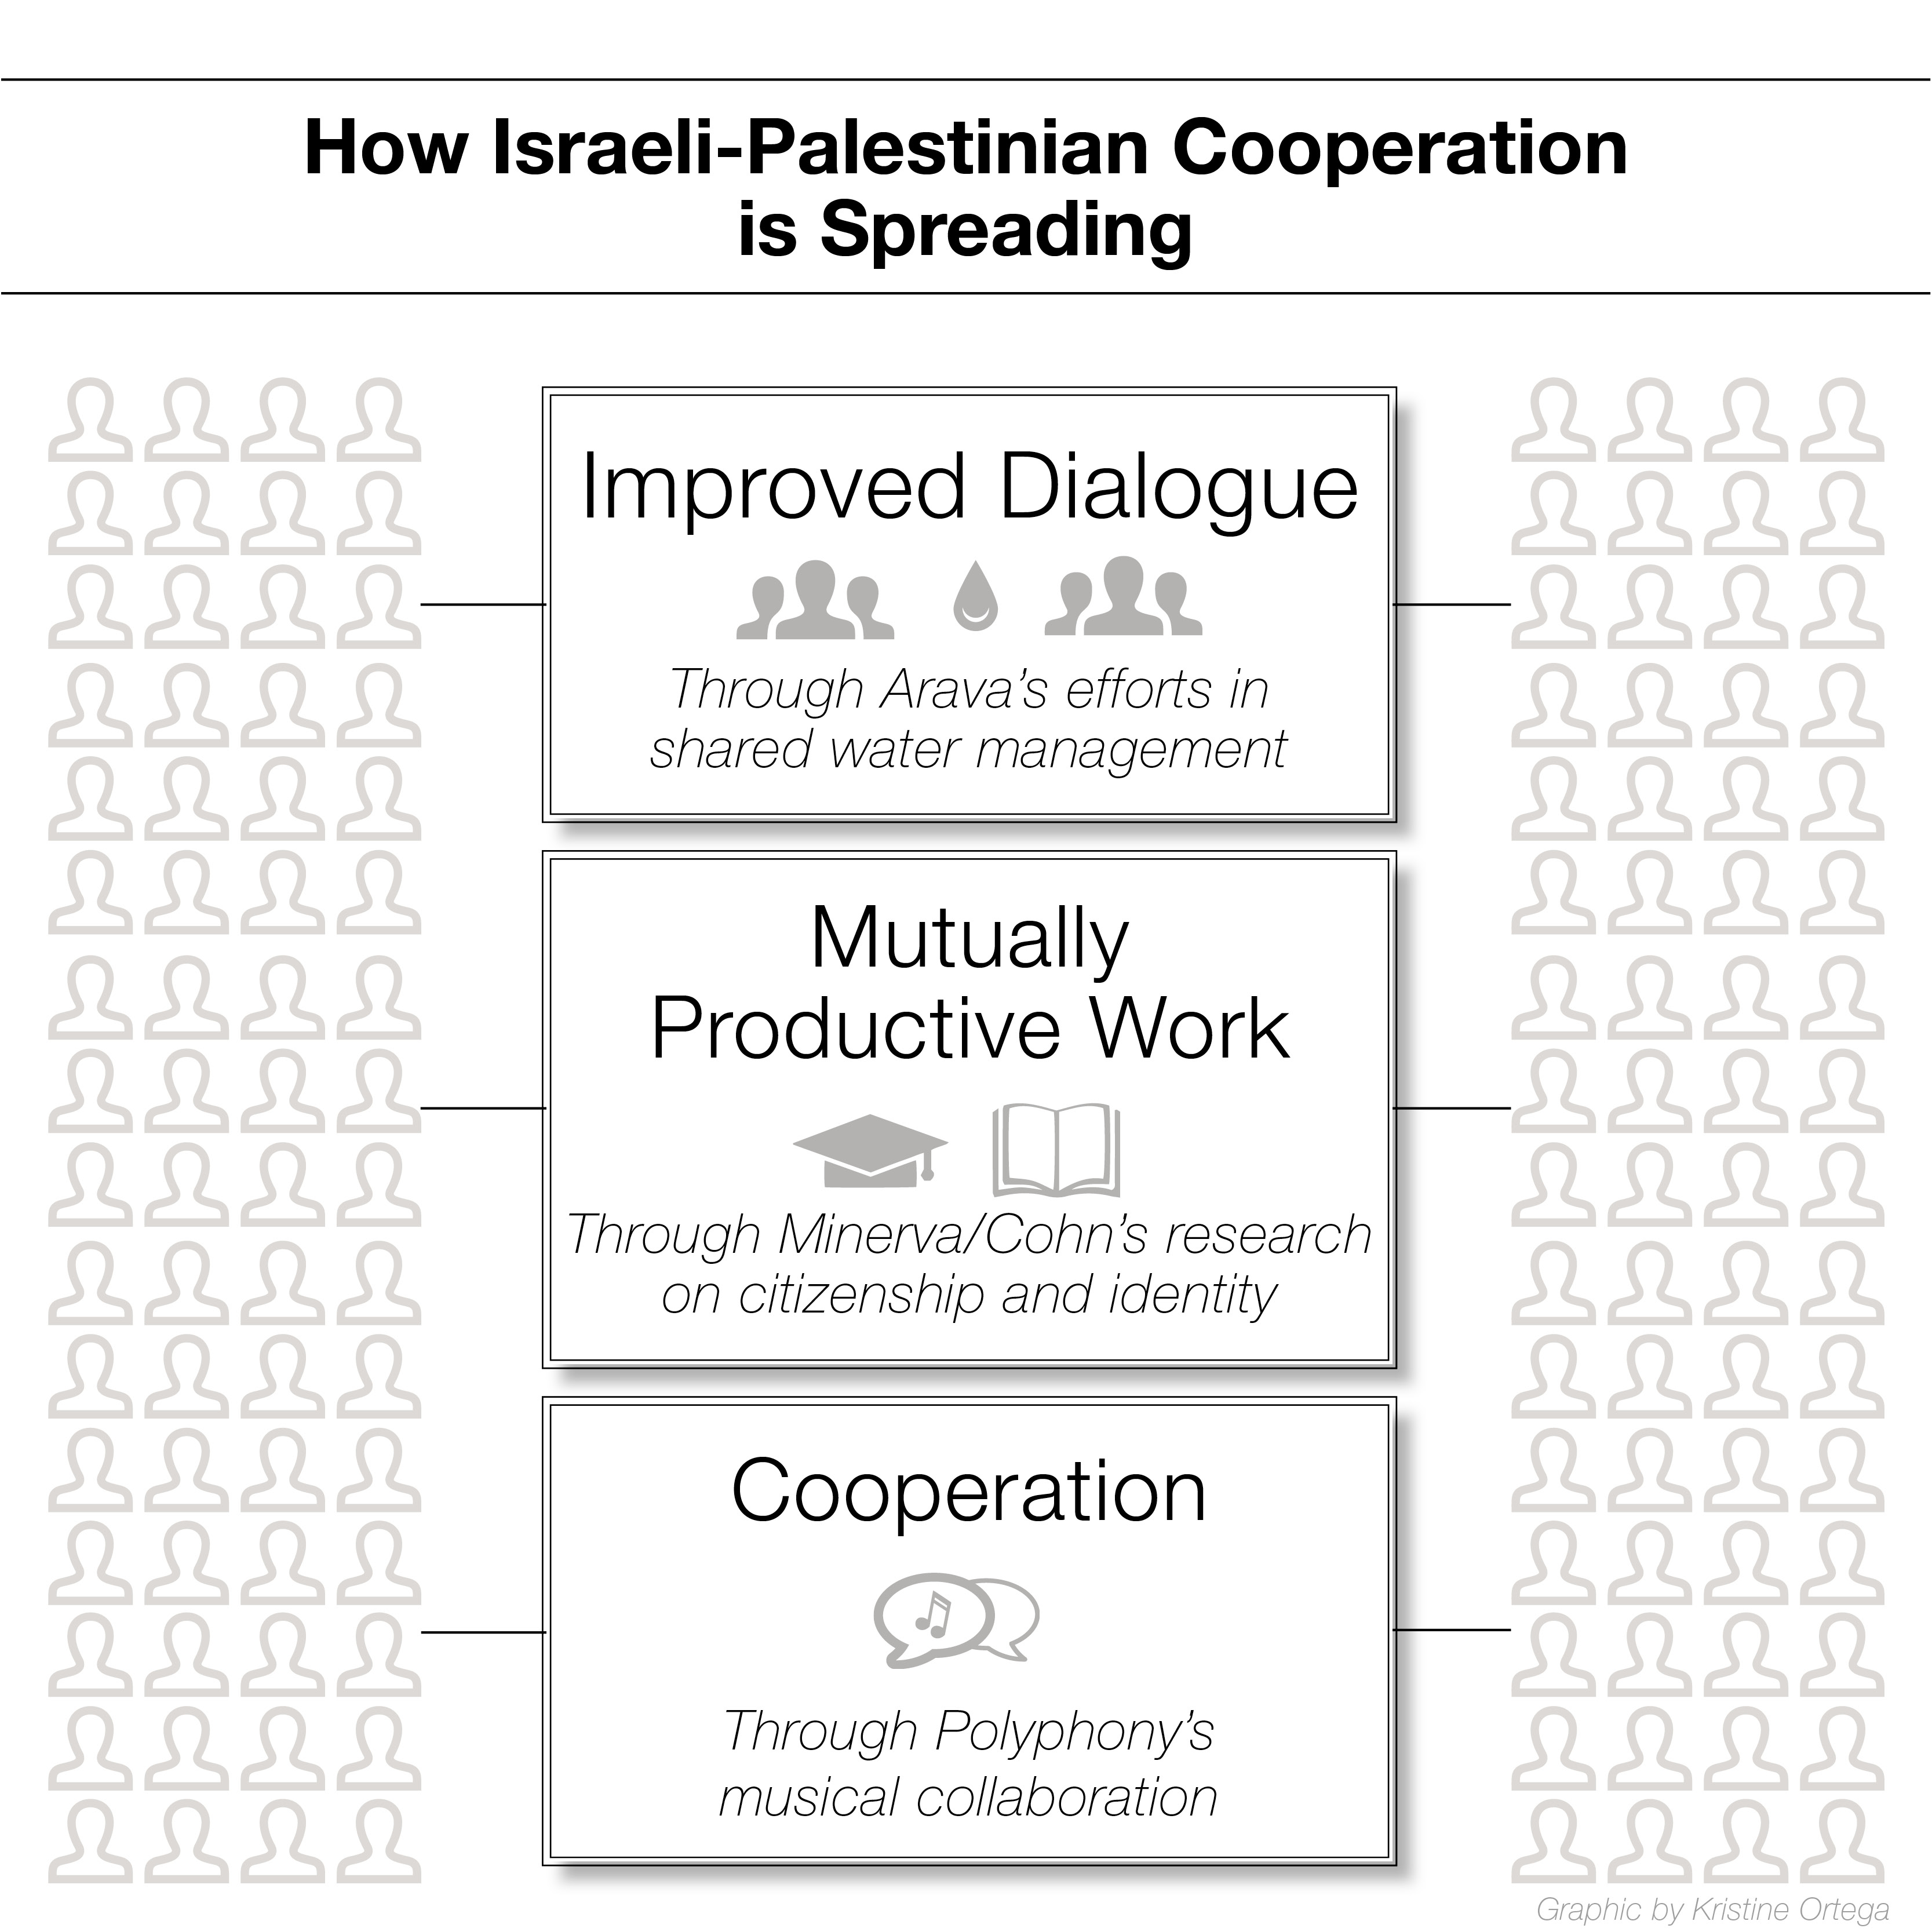 Jennifer Schwab of ENTITY discusses why there's hope for the Israeli-Palestinian cooperation